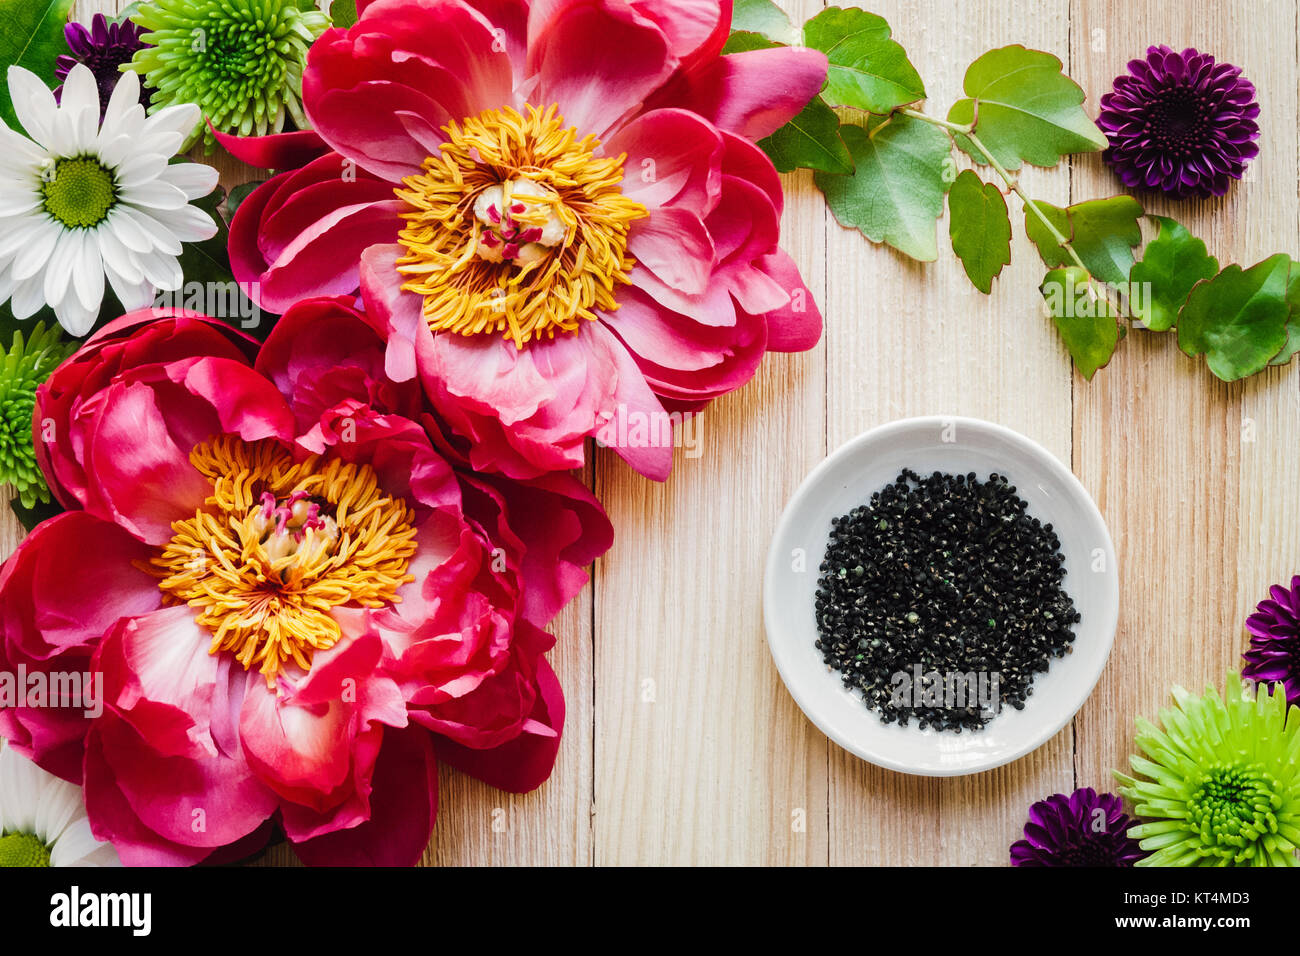 Peony Flowers with Daisies and Poms on Cedar Table - Stock Image